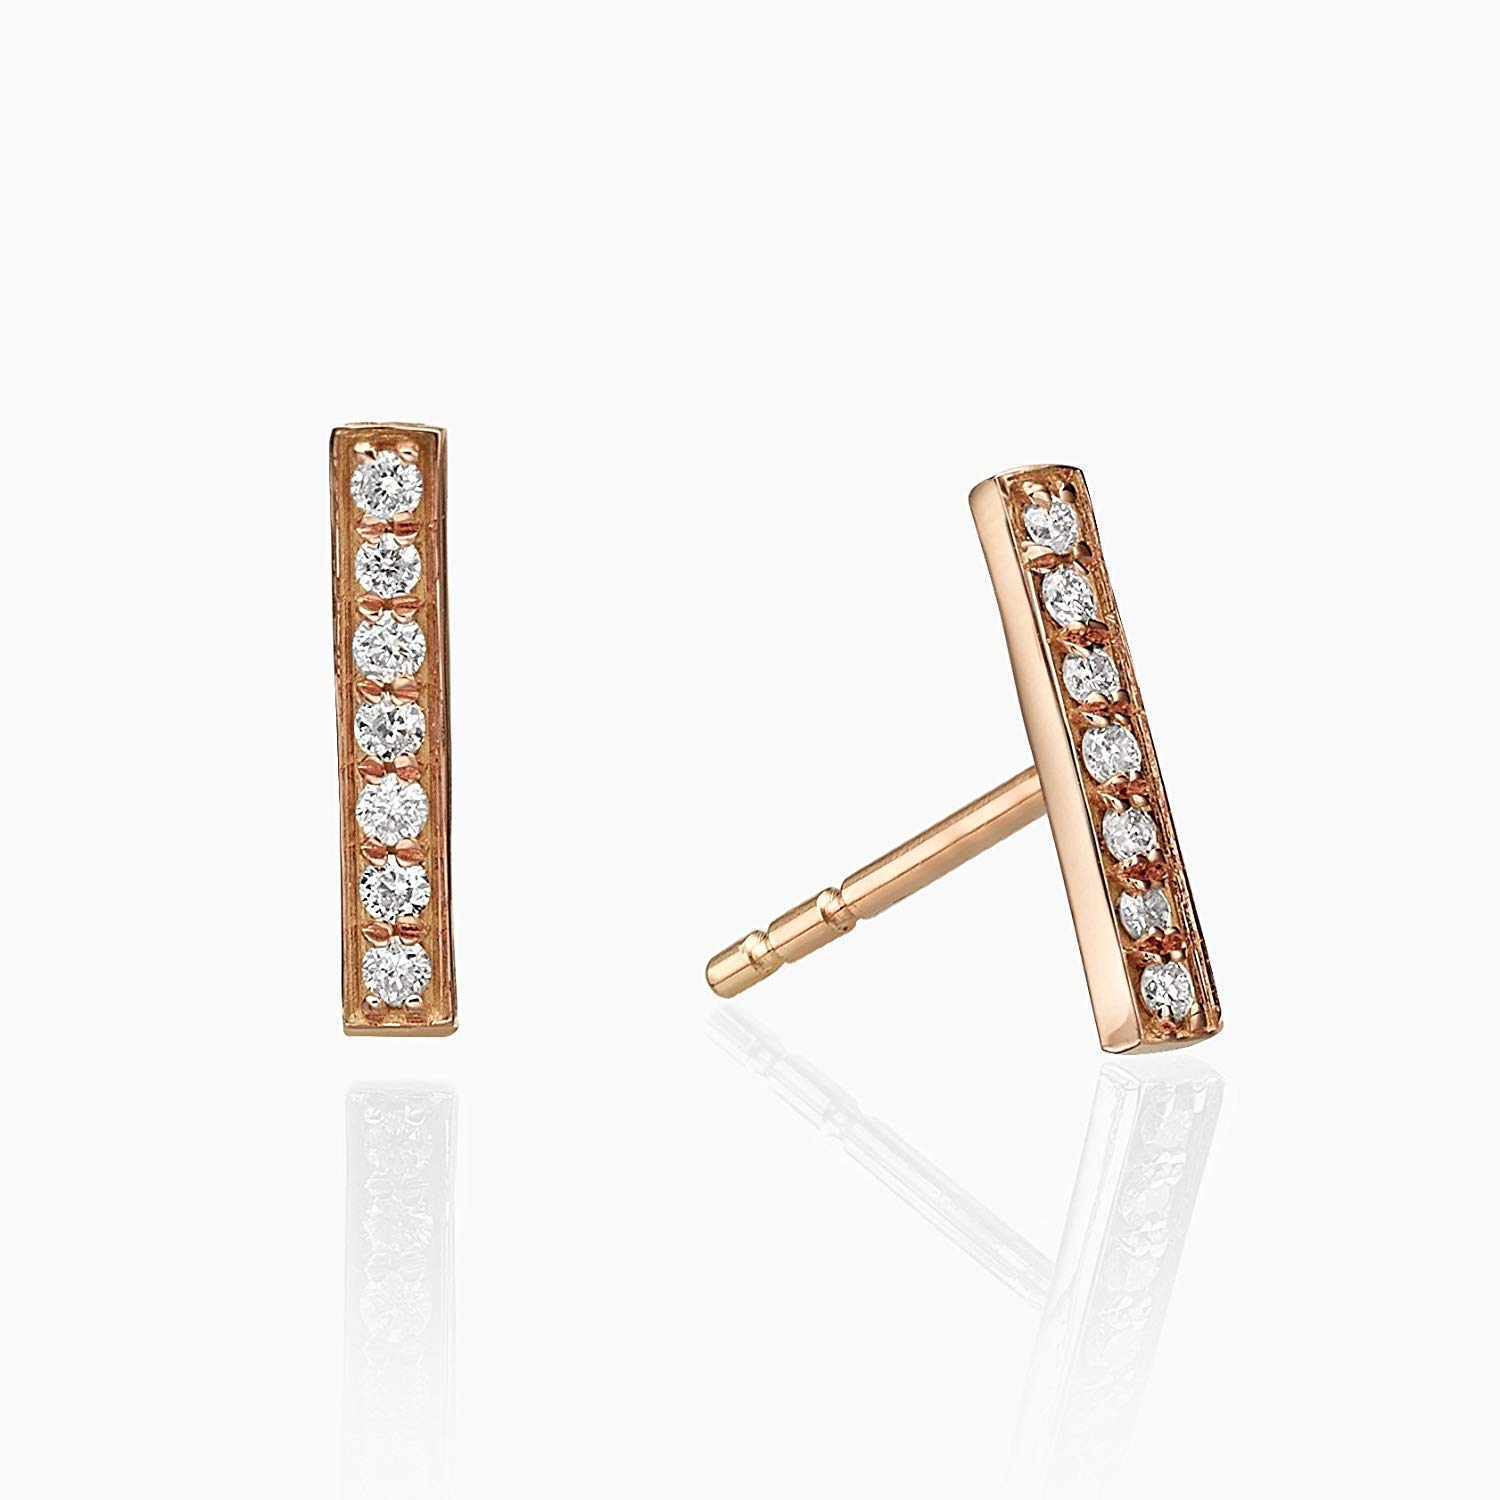 Get Quotations Gold Bar Diamond Stud Earrings Tiny